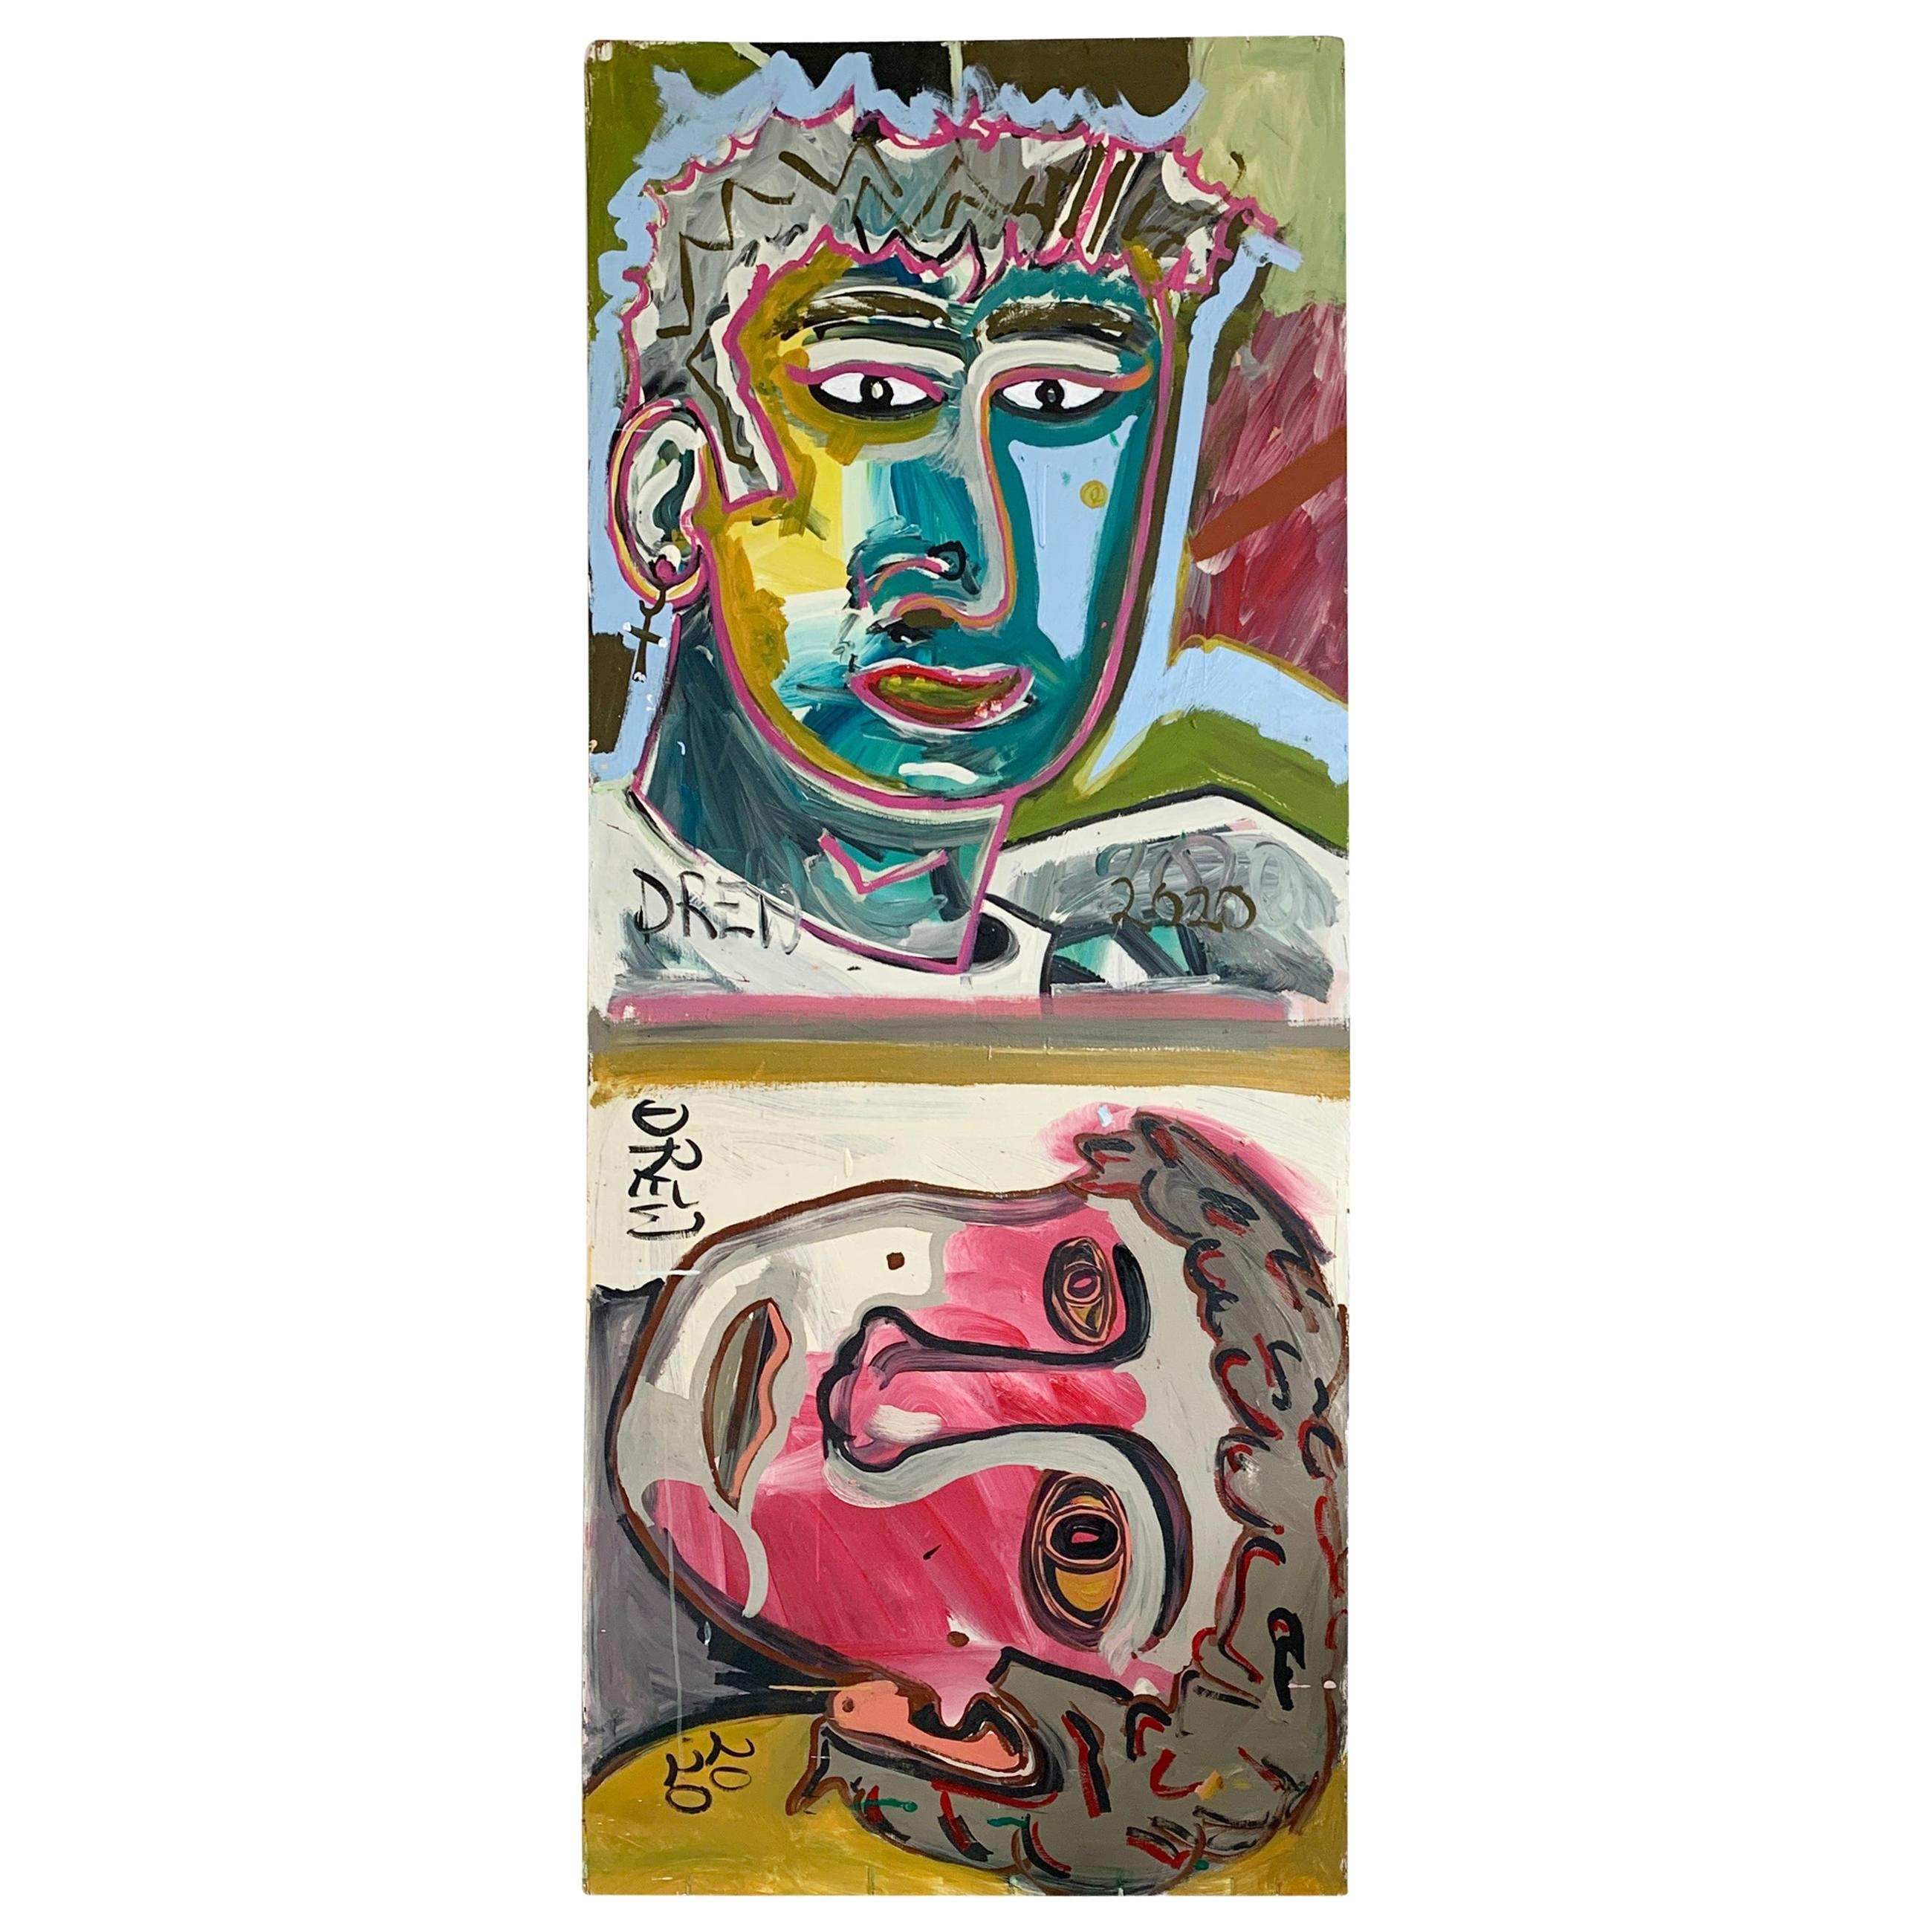 New And Custom Outsider and Self Taught Art